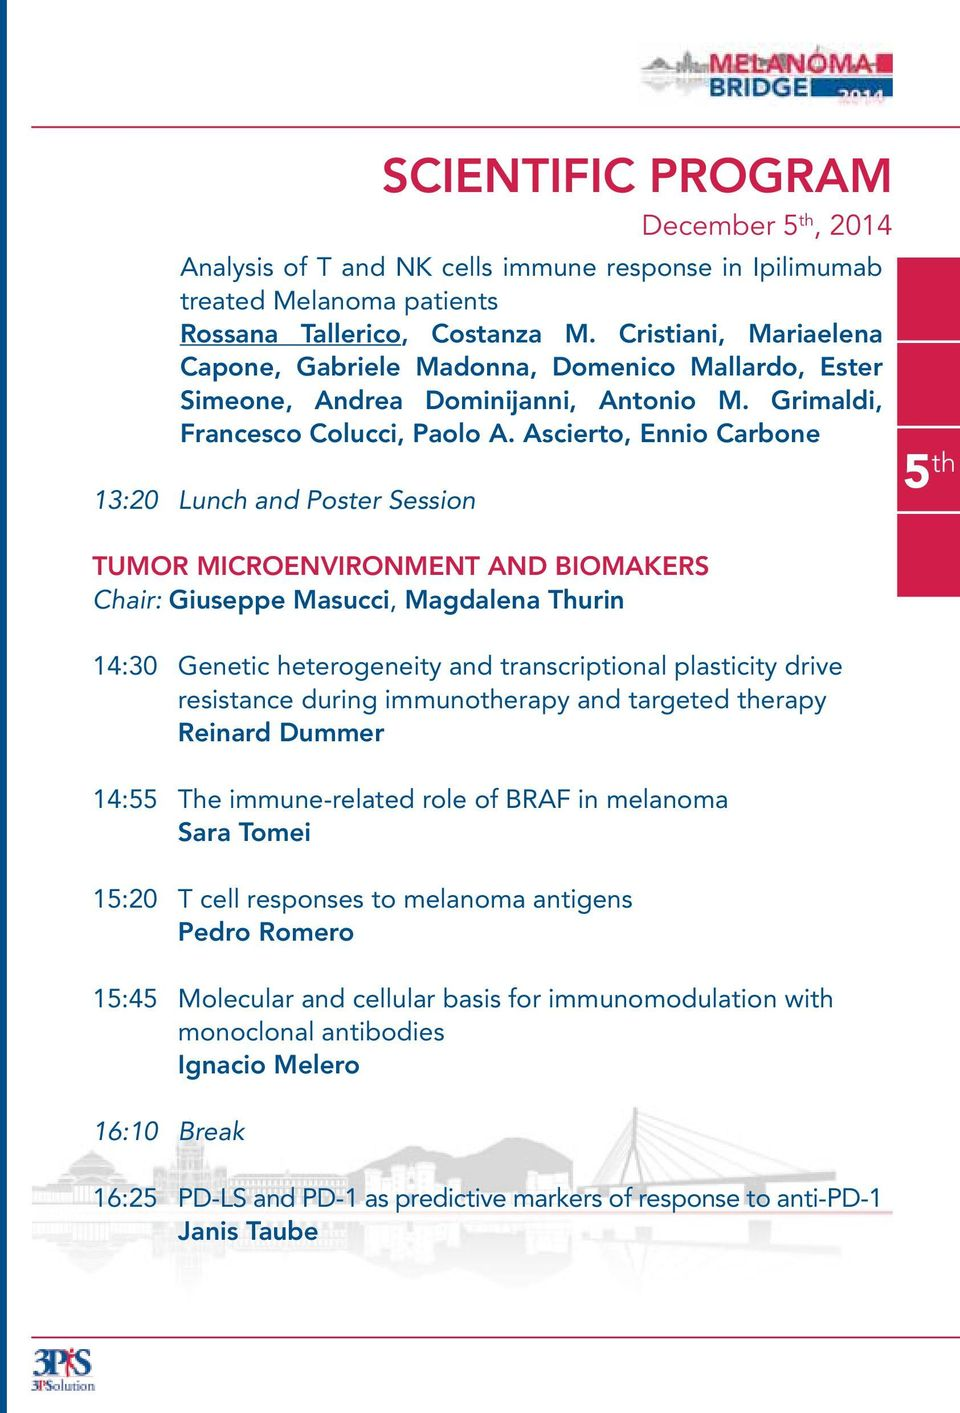 Ascierto, Ennio Carbone 13:20 Lunch and Poster Session Tumor Microenvironment and Biomakers Chair: Giuseppe Masucci, Magdalena Thurin 14:30 Genetic heterogeneity and transcriptional plasticity drive